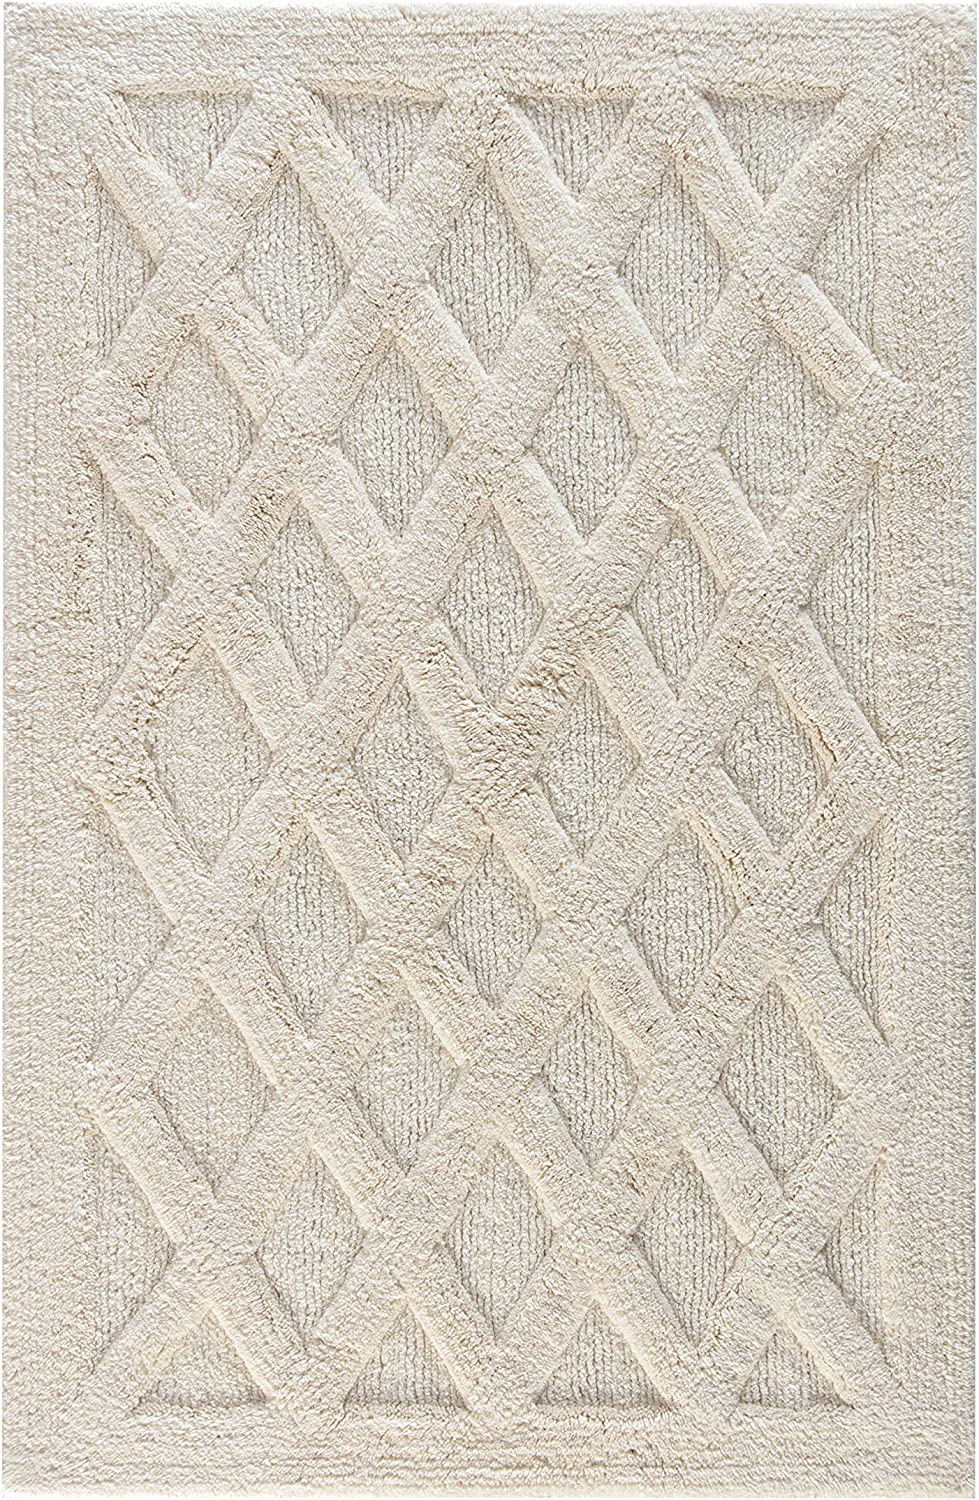 store MH London Alderbury New product! New type Hand Woven Bath - Rugs 100 Using Tufted